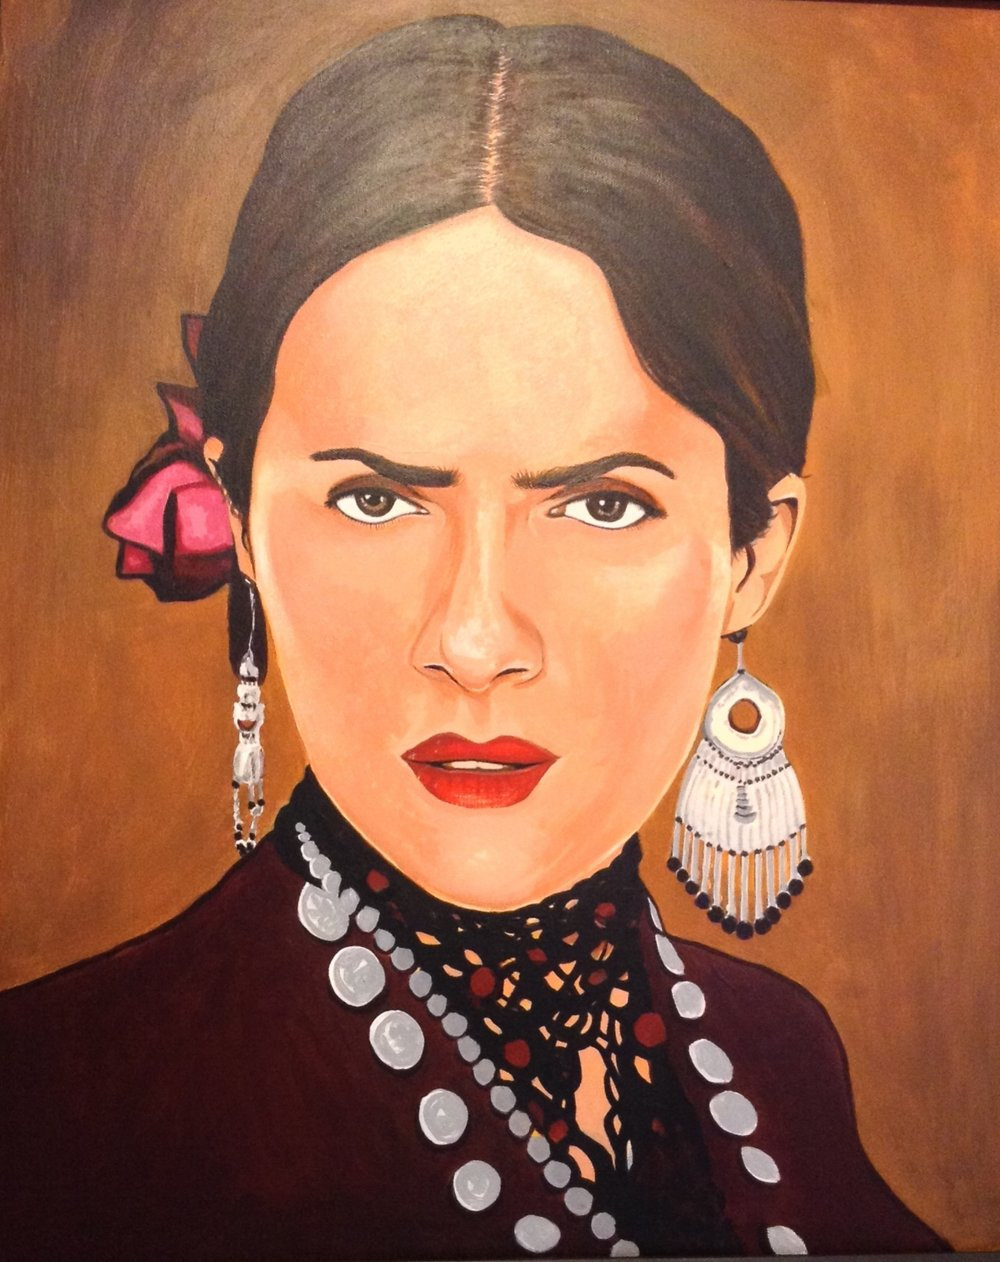 "Zamora, Gil.  Salma as Freda.  2010. Acrylic on canvas, 18"" x 24"". Private collection."